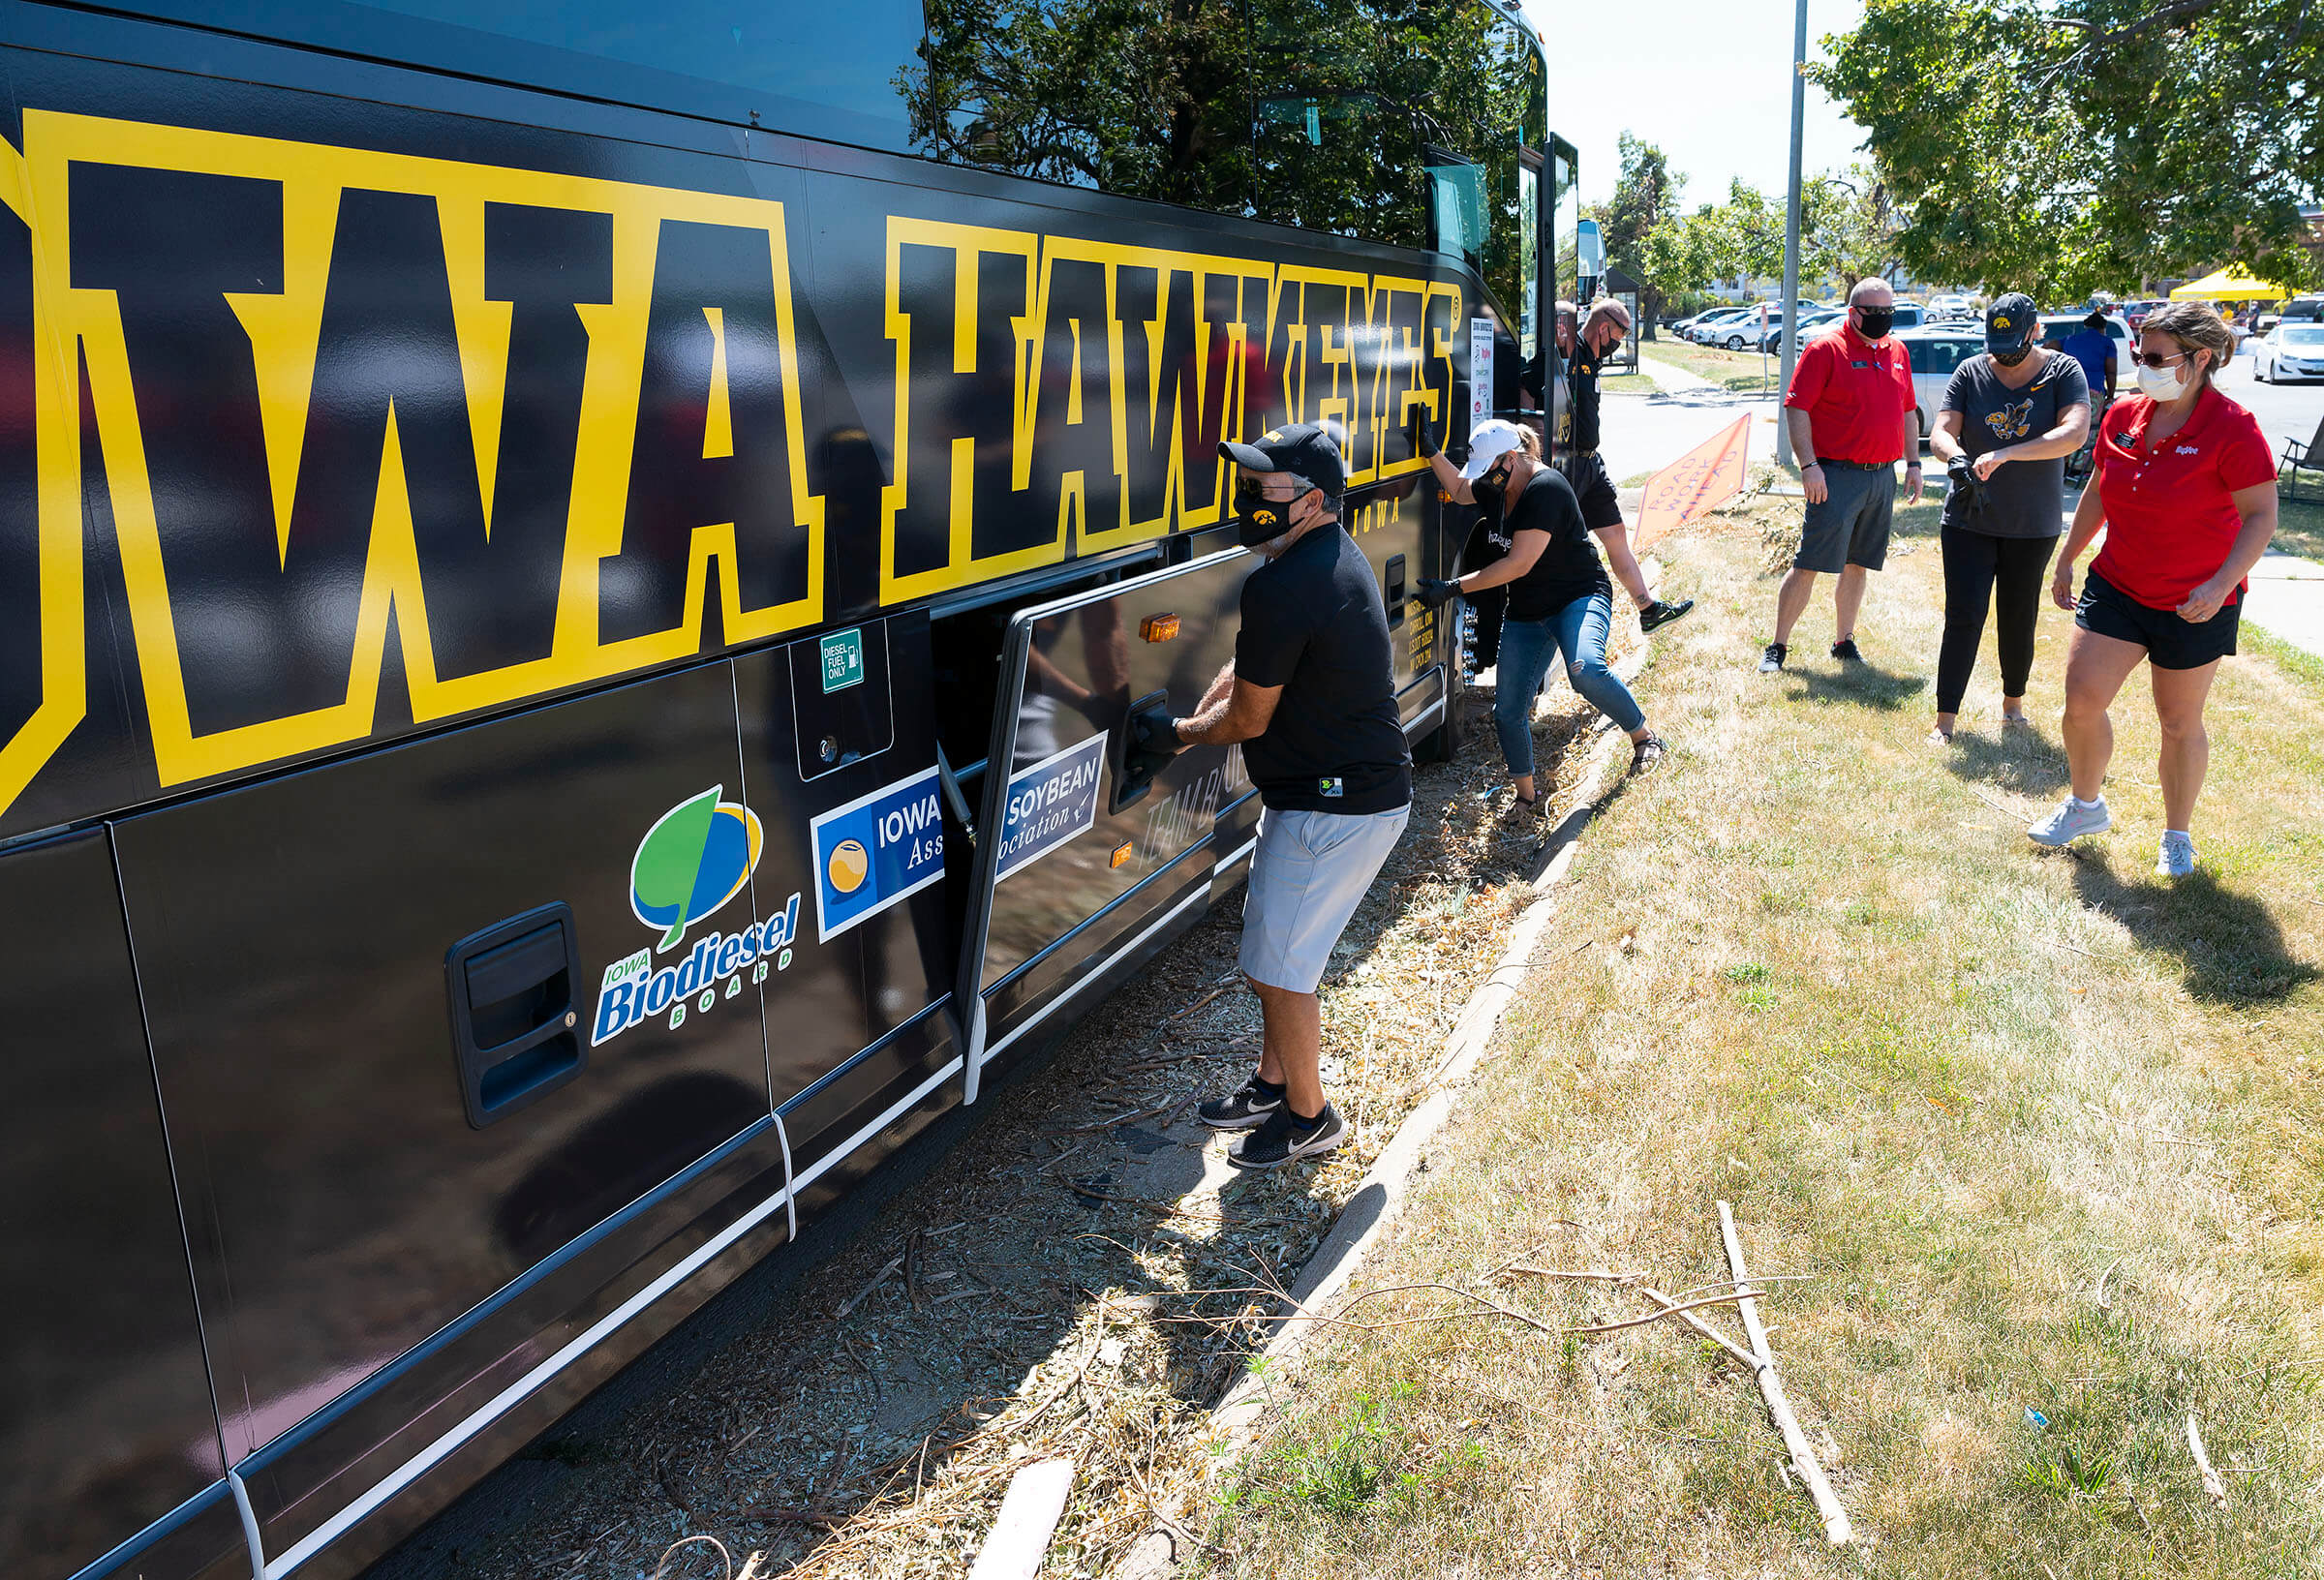 Iowa Hawkeye team bus with people outside of it wearing